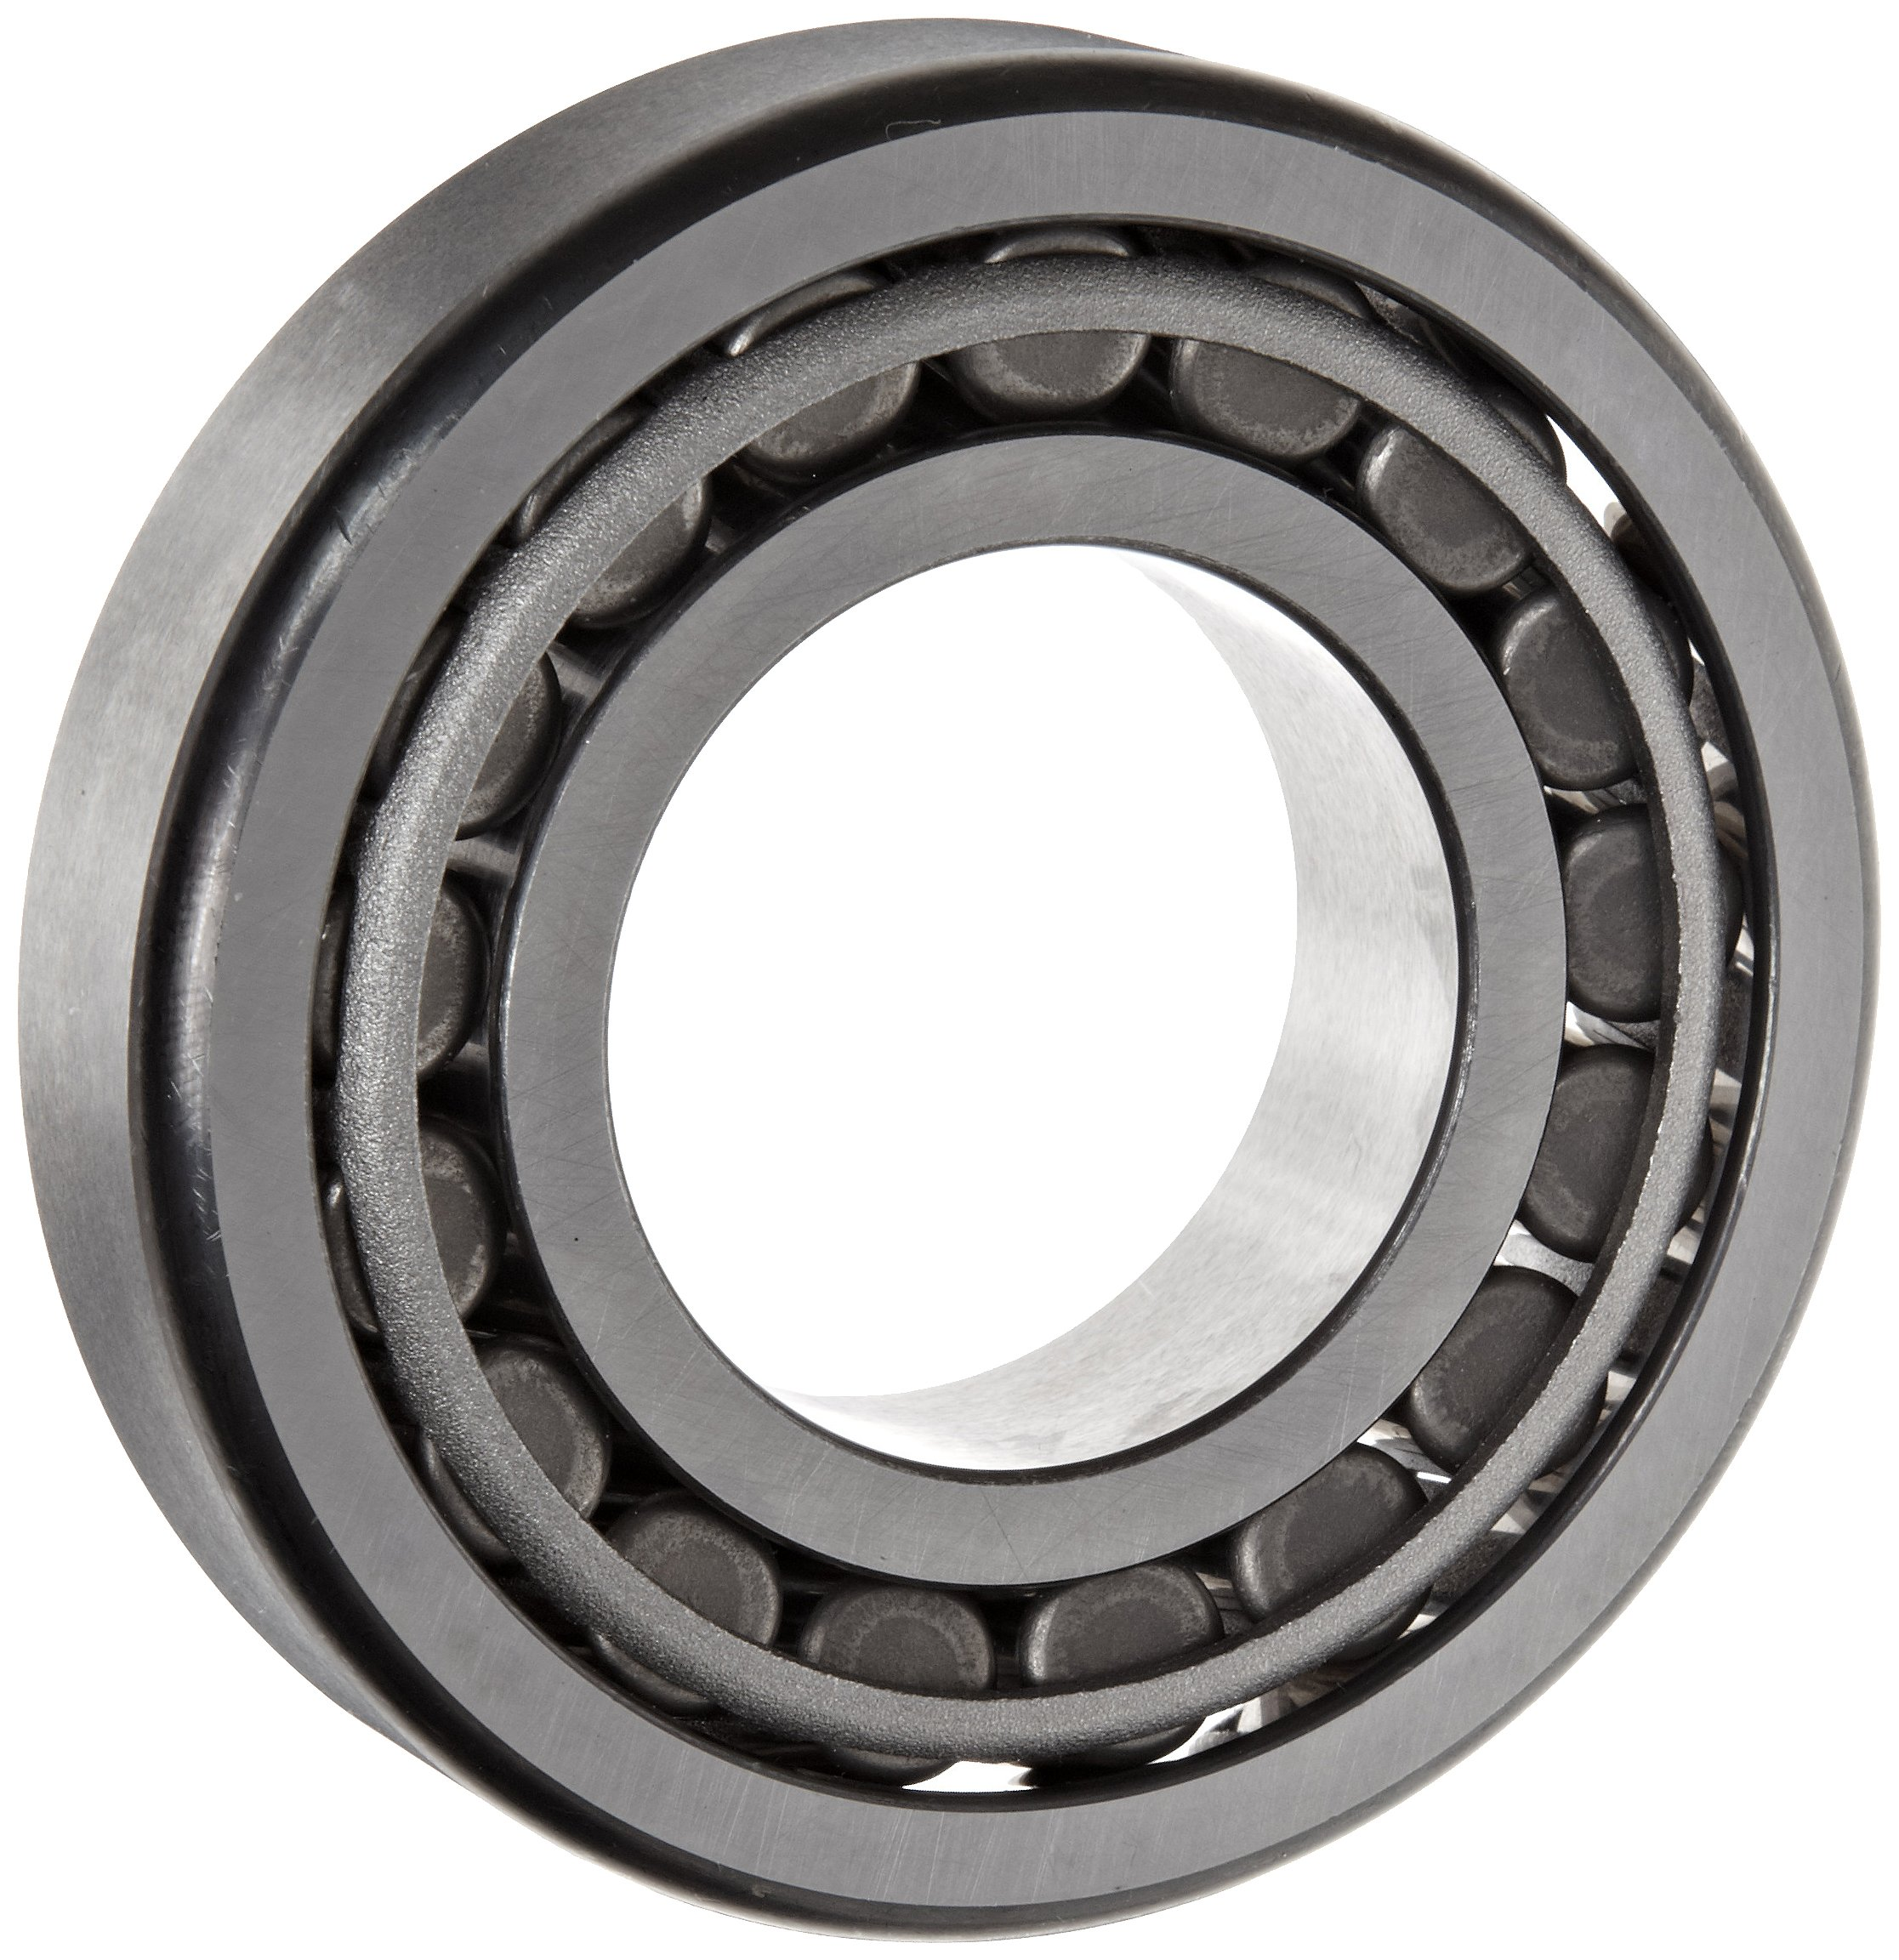 FAG 33020 Tapered Roller Bearing Cone and Cup Set, Standard Tolerance, Metric, 100 mm ID, 150mm OD, 39mm Width, 4500rpm Maximum Rotational Speed